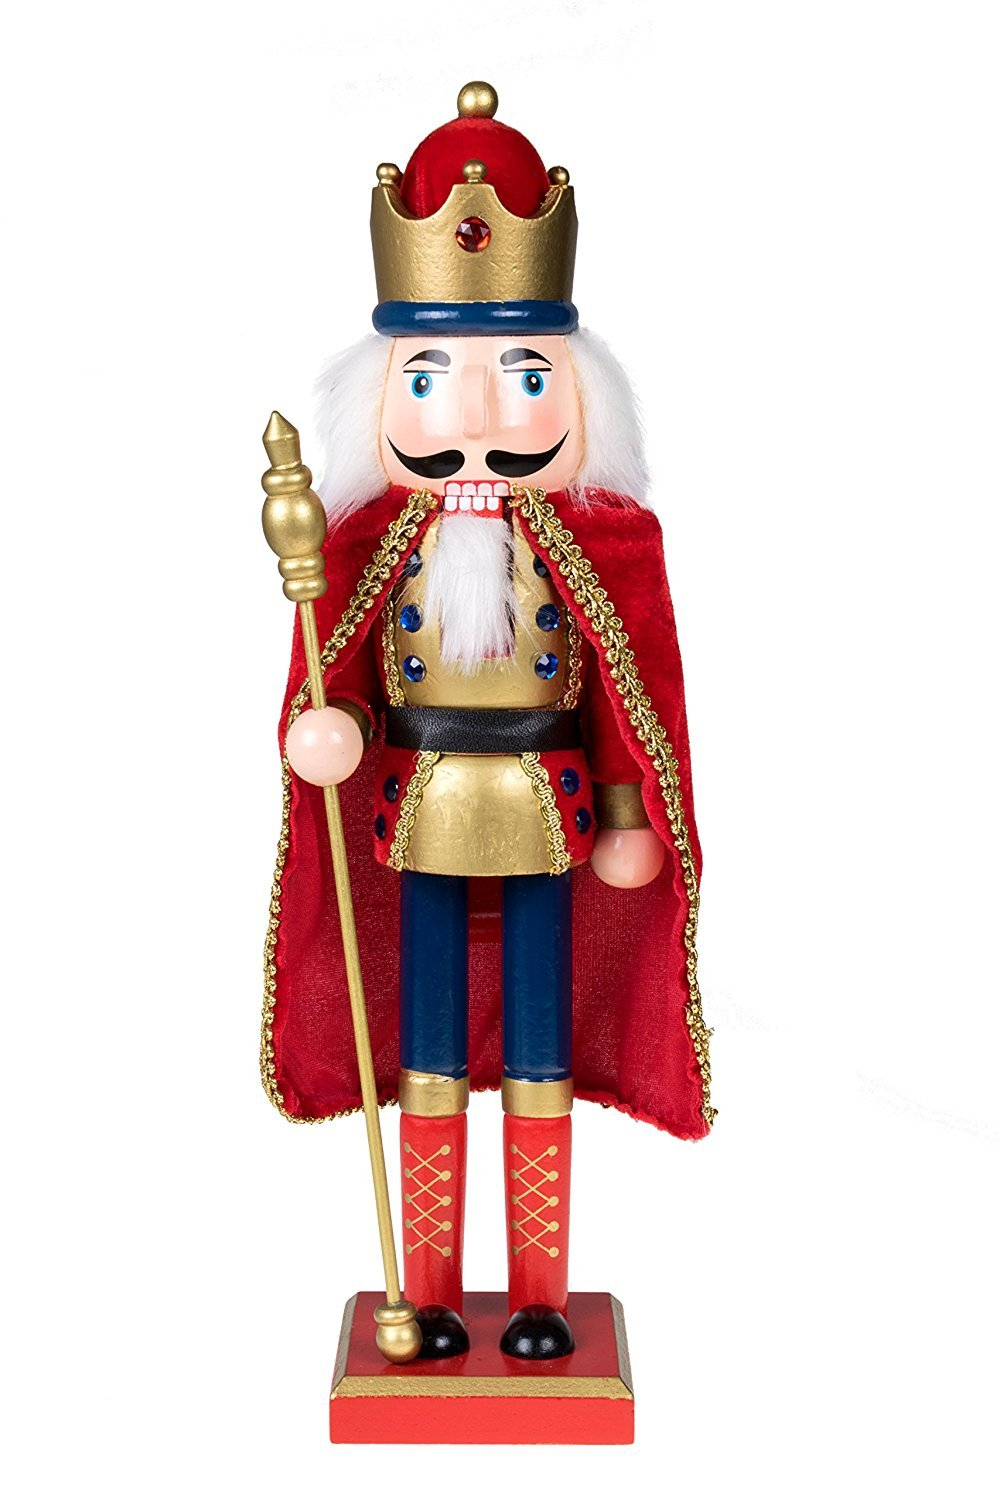 Clever Creations Traditional Soldier Drummer Nutcracker Hat and Drum | Red Uniform | Perfect for Any Collection | Festive Christmas Decor | Perfect for Shelves & Tables | 100% Wood | 14